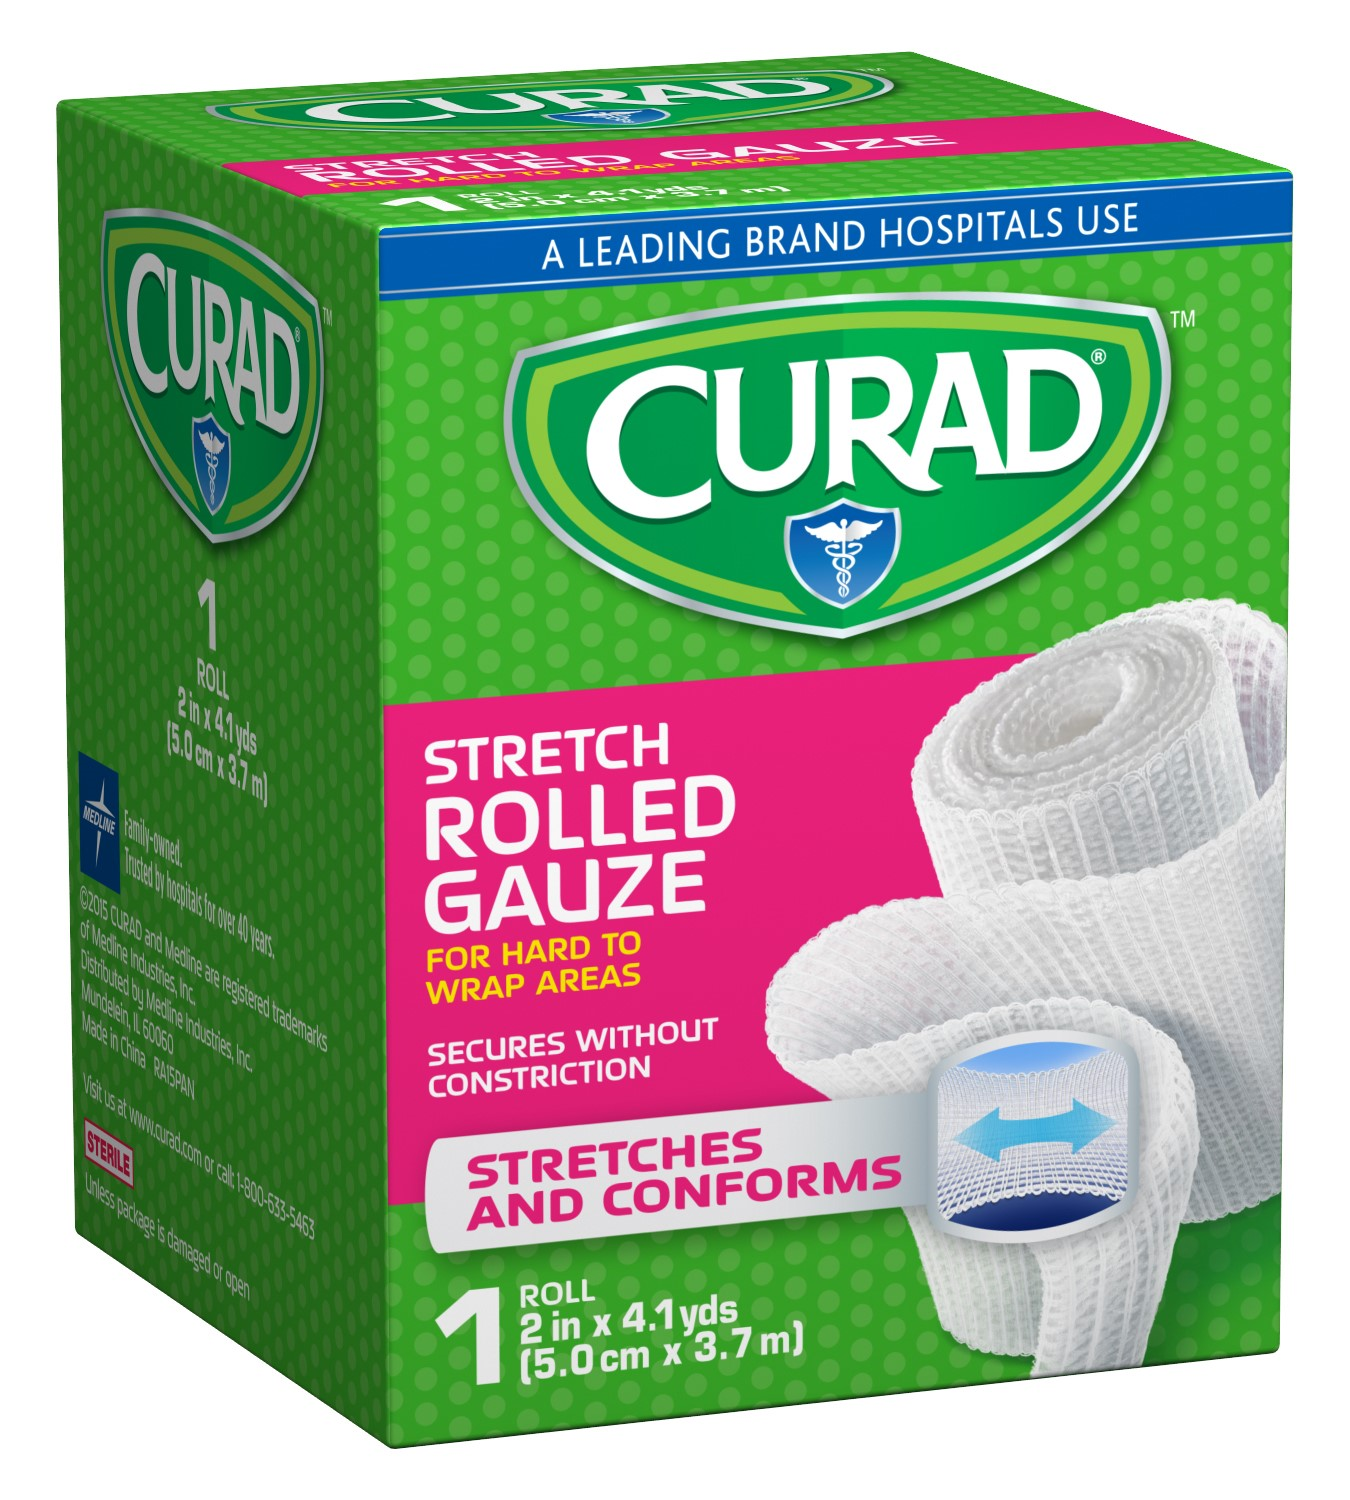 Curad Sterile Rolled Gauze